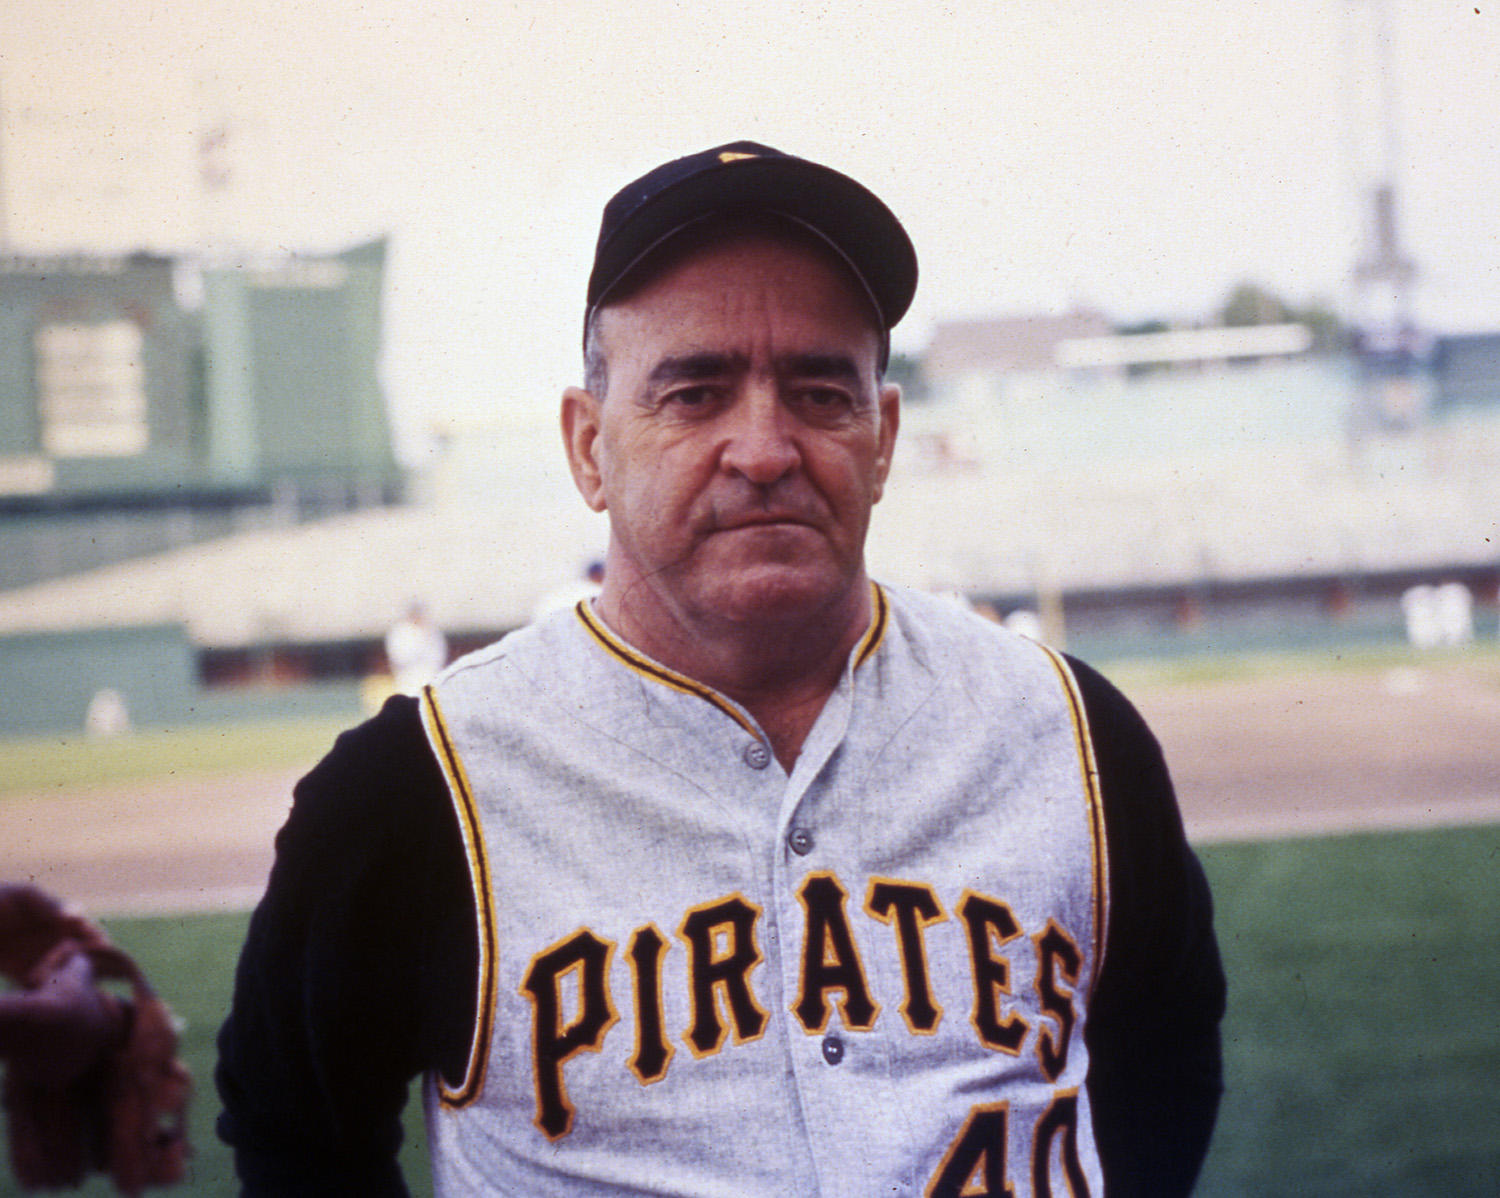 """In Game 3 of the 1971 World Series, Pirates manager Danny Murtaugh called for Bob Robertson to bunt, but Robertson hit a home run instead. After Robertson apologized for the miscommunication, Murtaugh joked, """"Under the circumstances, there will be no fine."""" (National Baseball Hall of Fame and Museum)"""